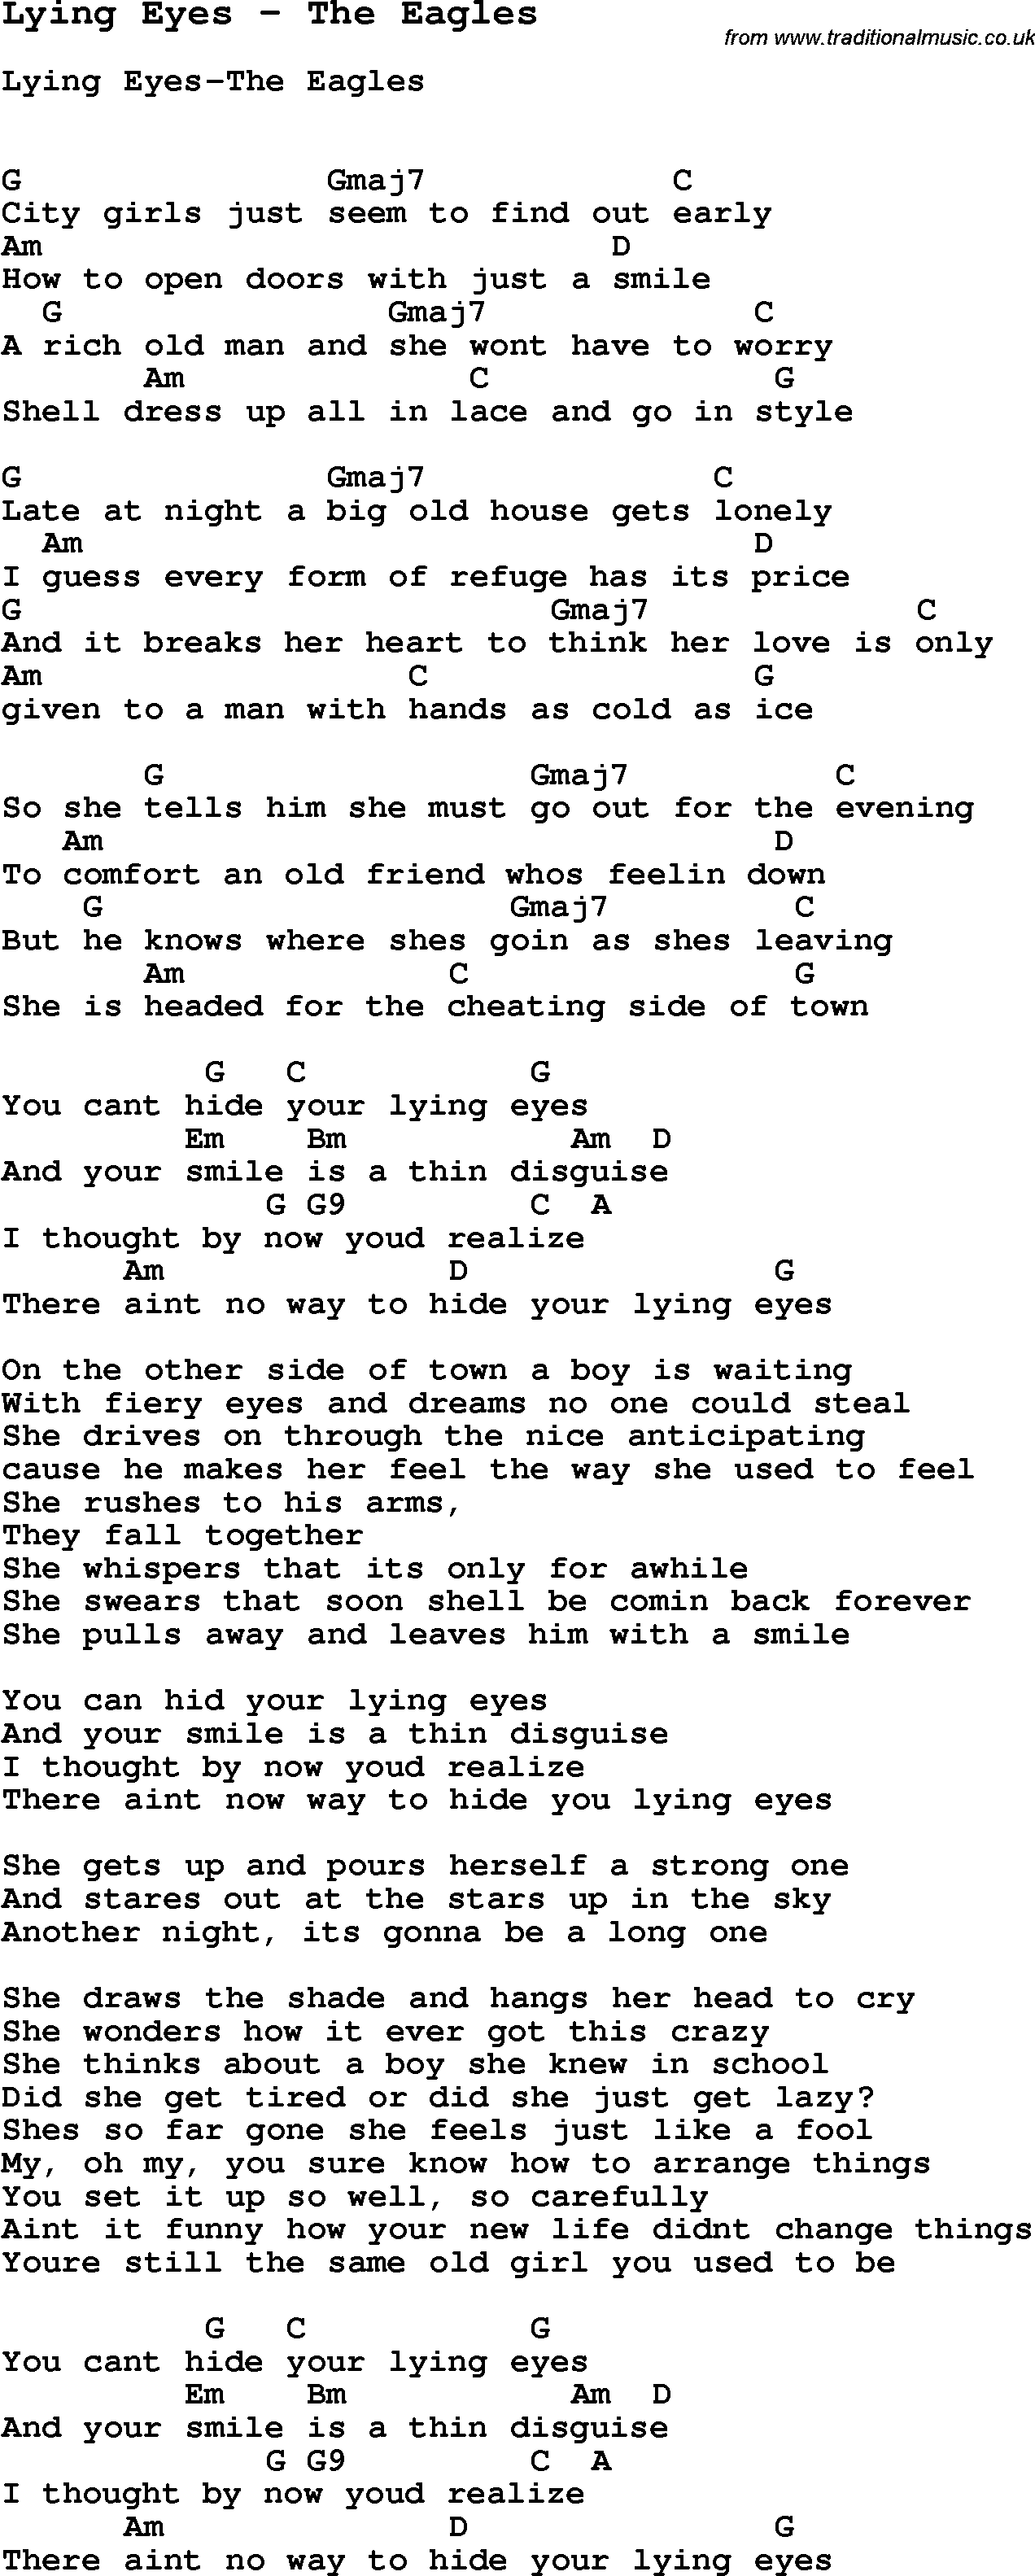 Song lying eyes by the eagles with lyrics for vocal performance song lying eyes by the eagles with lyrics for vocal performance and accompaniment chords for hexwebz Choice Image